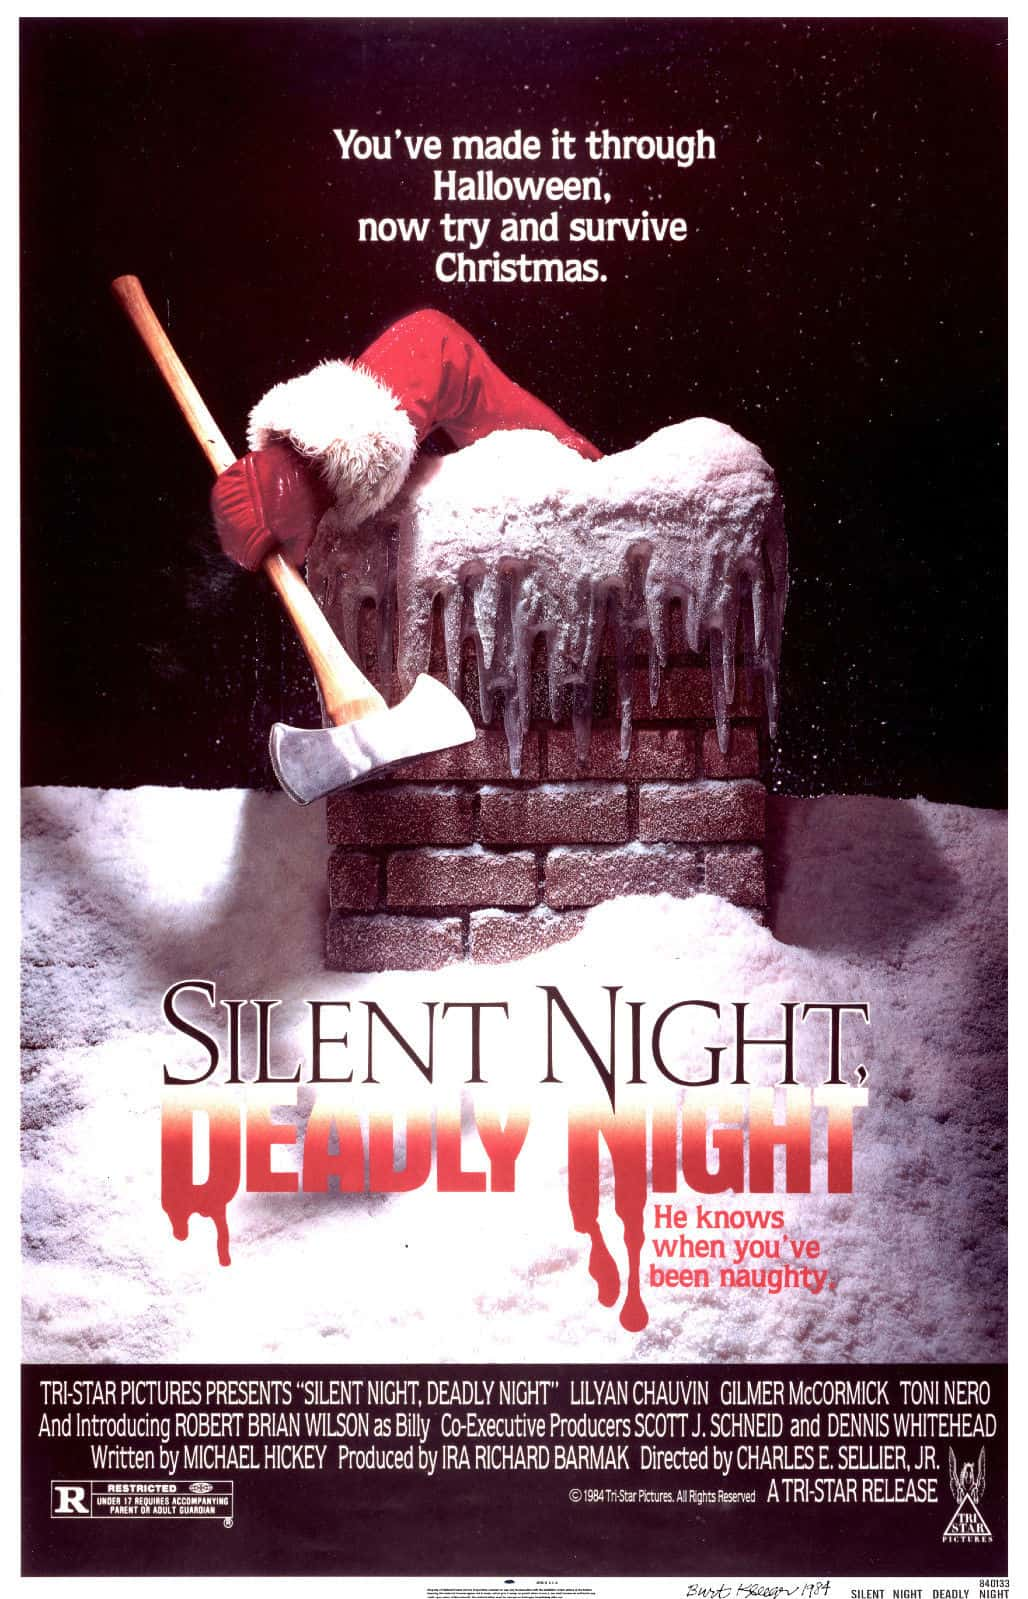 Mike's Review: Silent Night Deadly Night (1984)